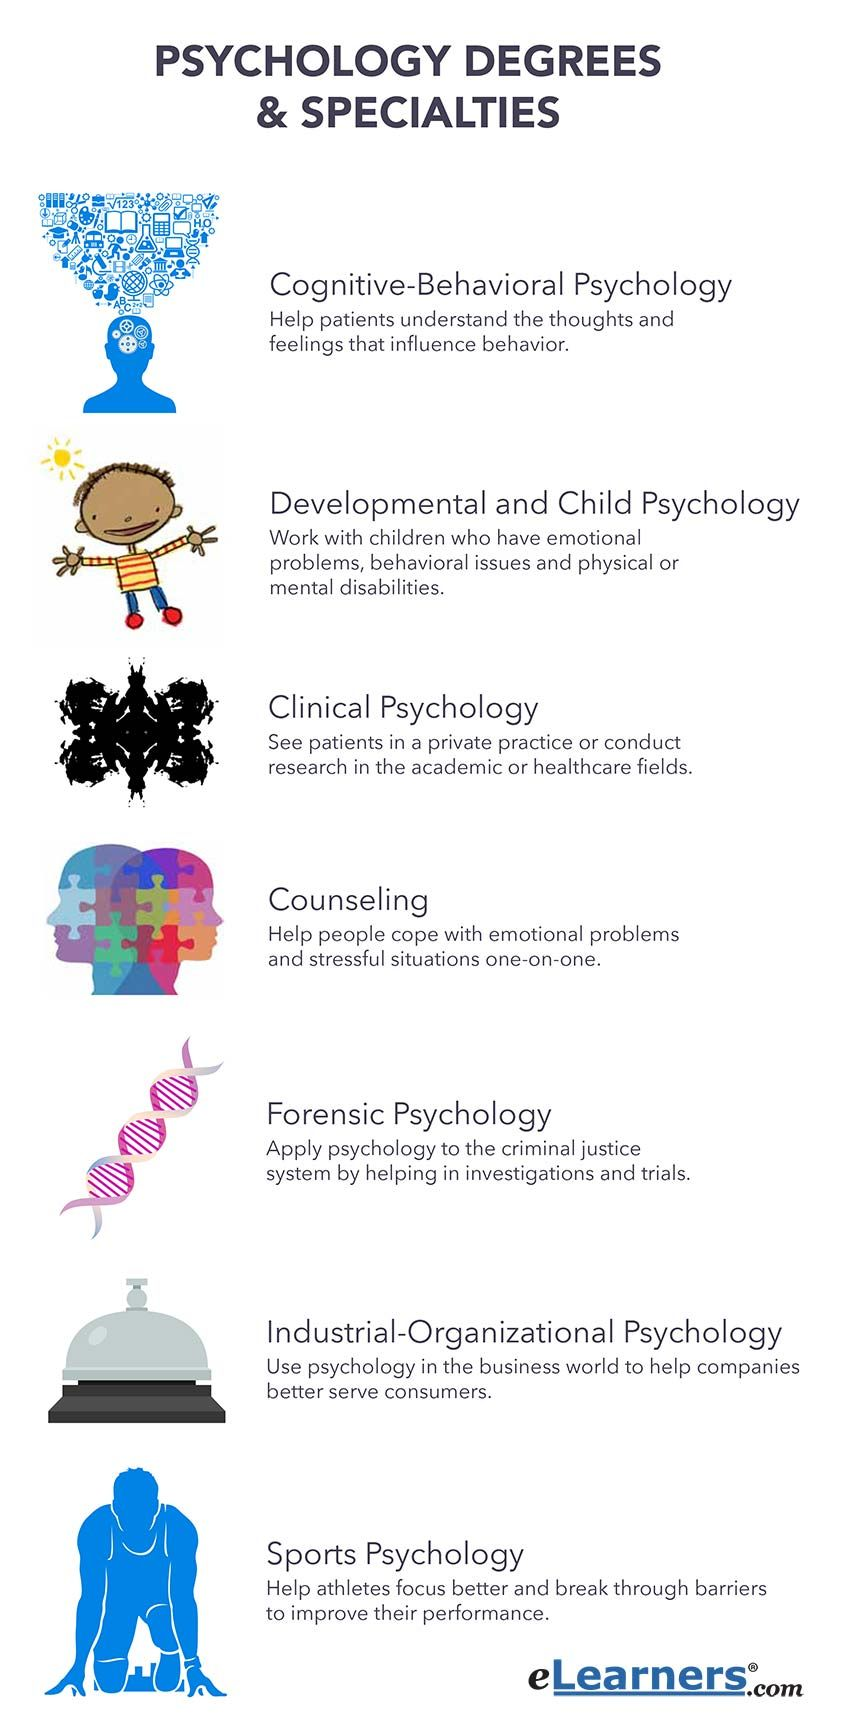 Top 10 Reasons Why Students Choose a College Psychology